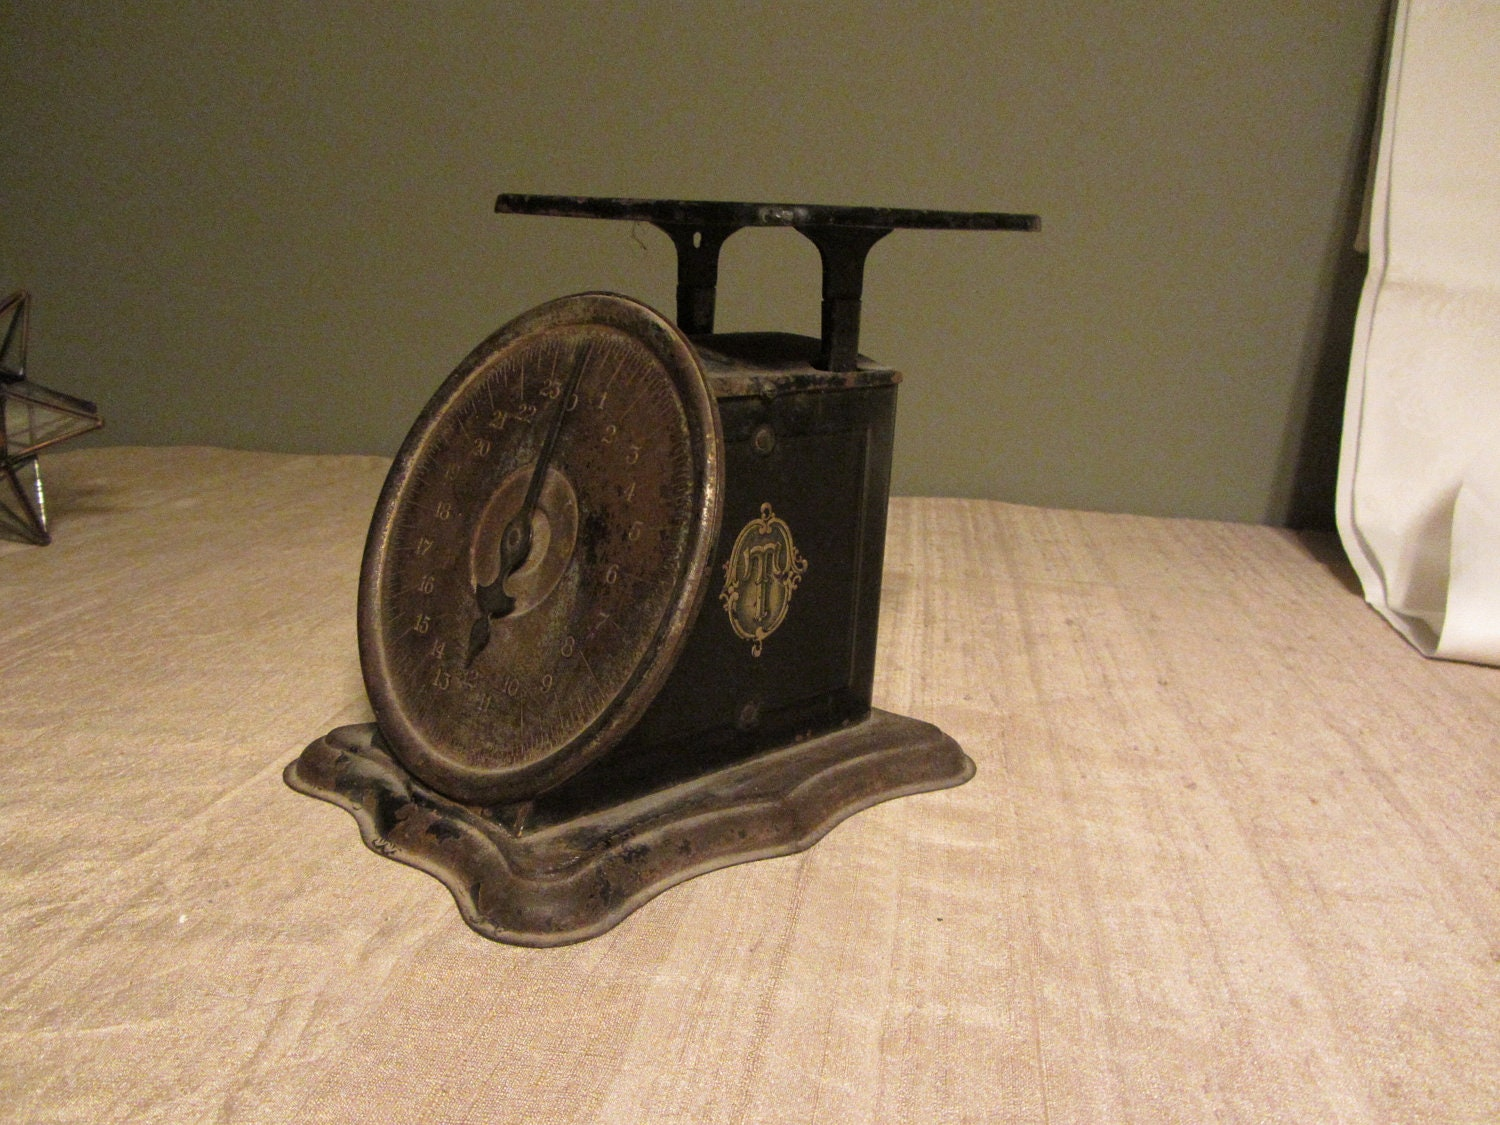 Antique Triner Scale Amp Mfg Co 1906 Chicago By Chermycloset